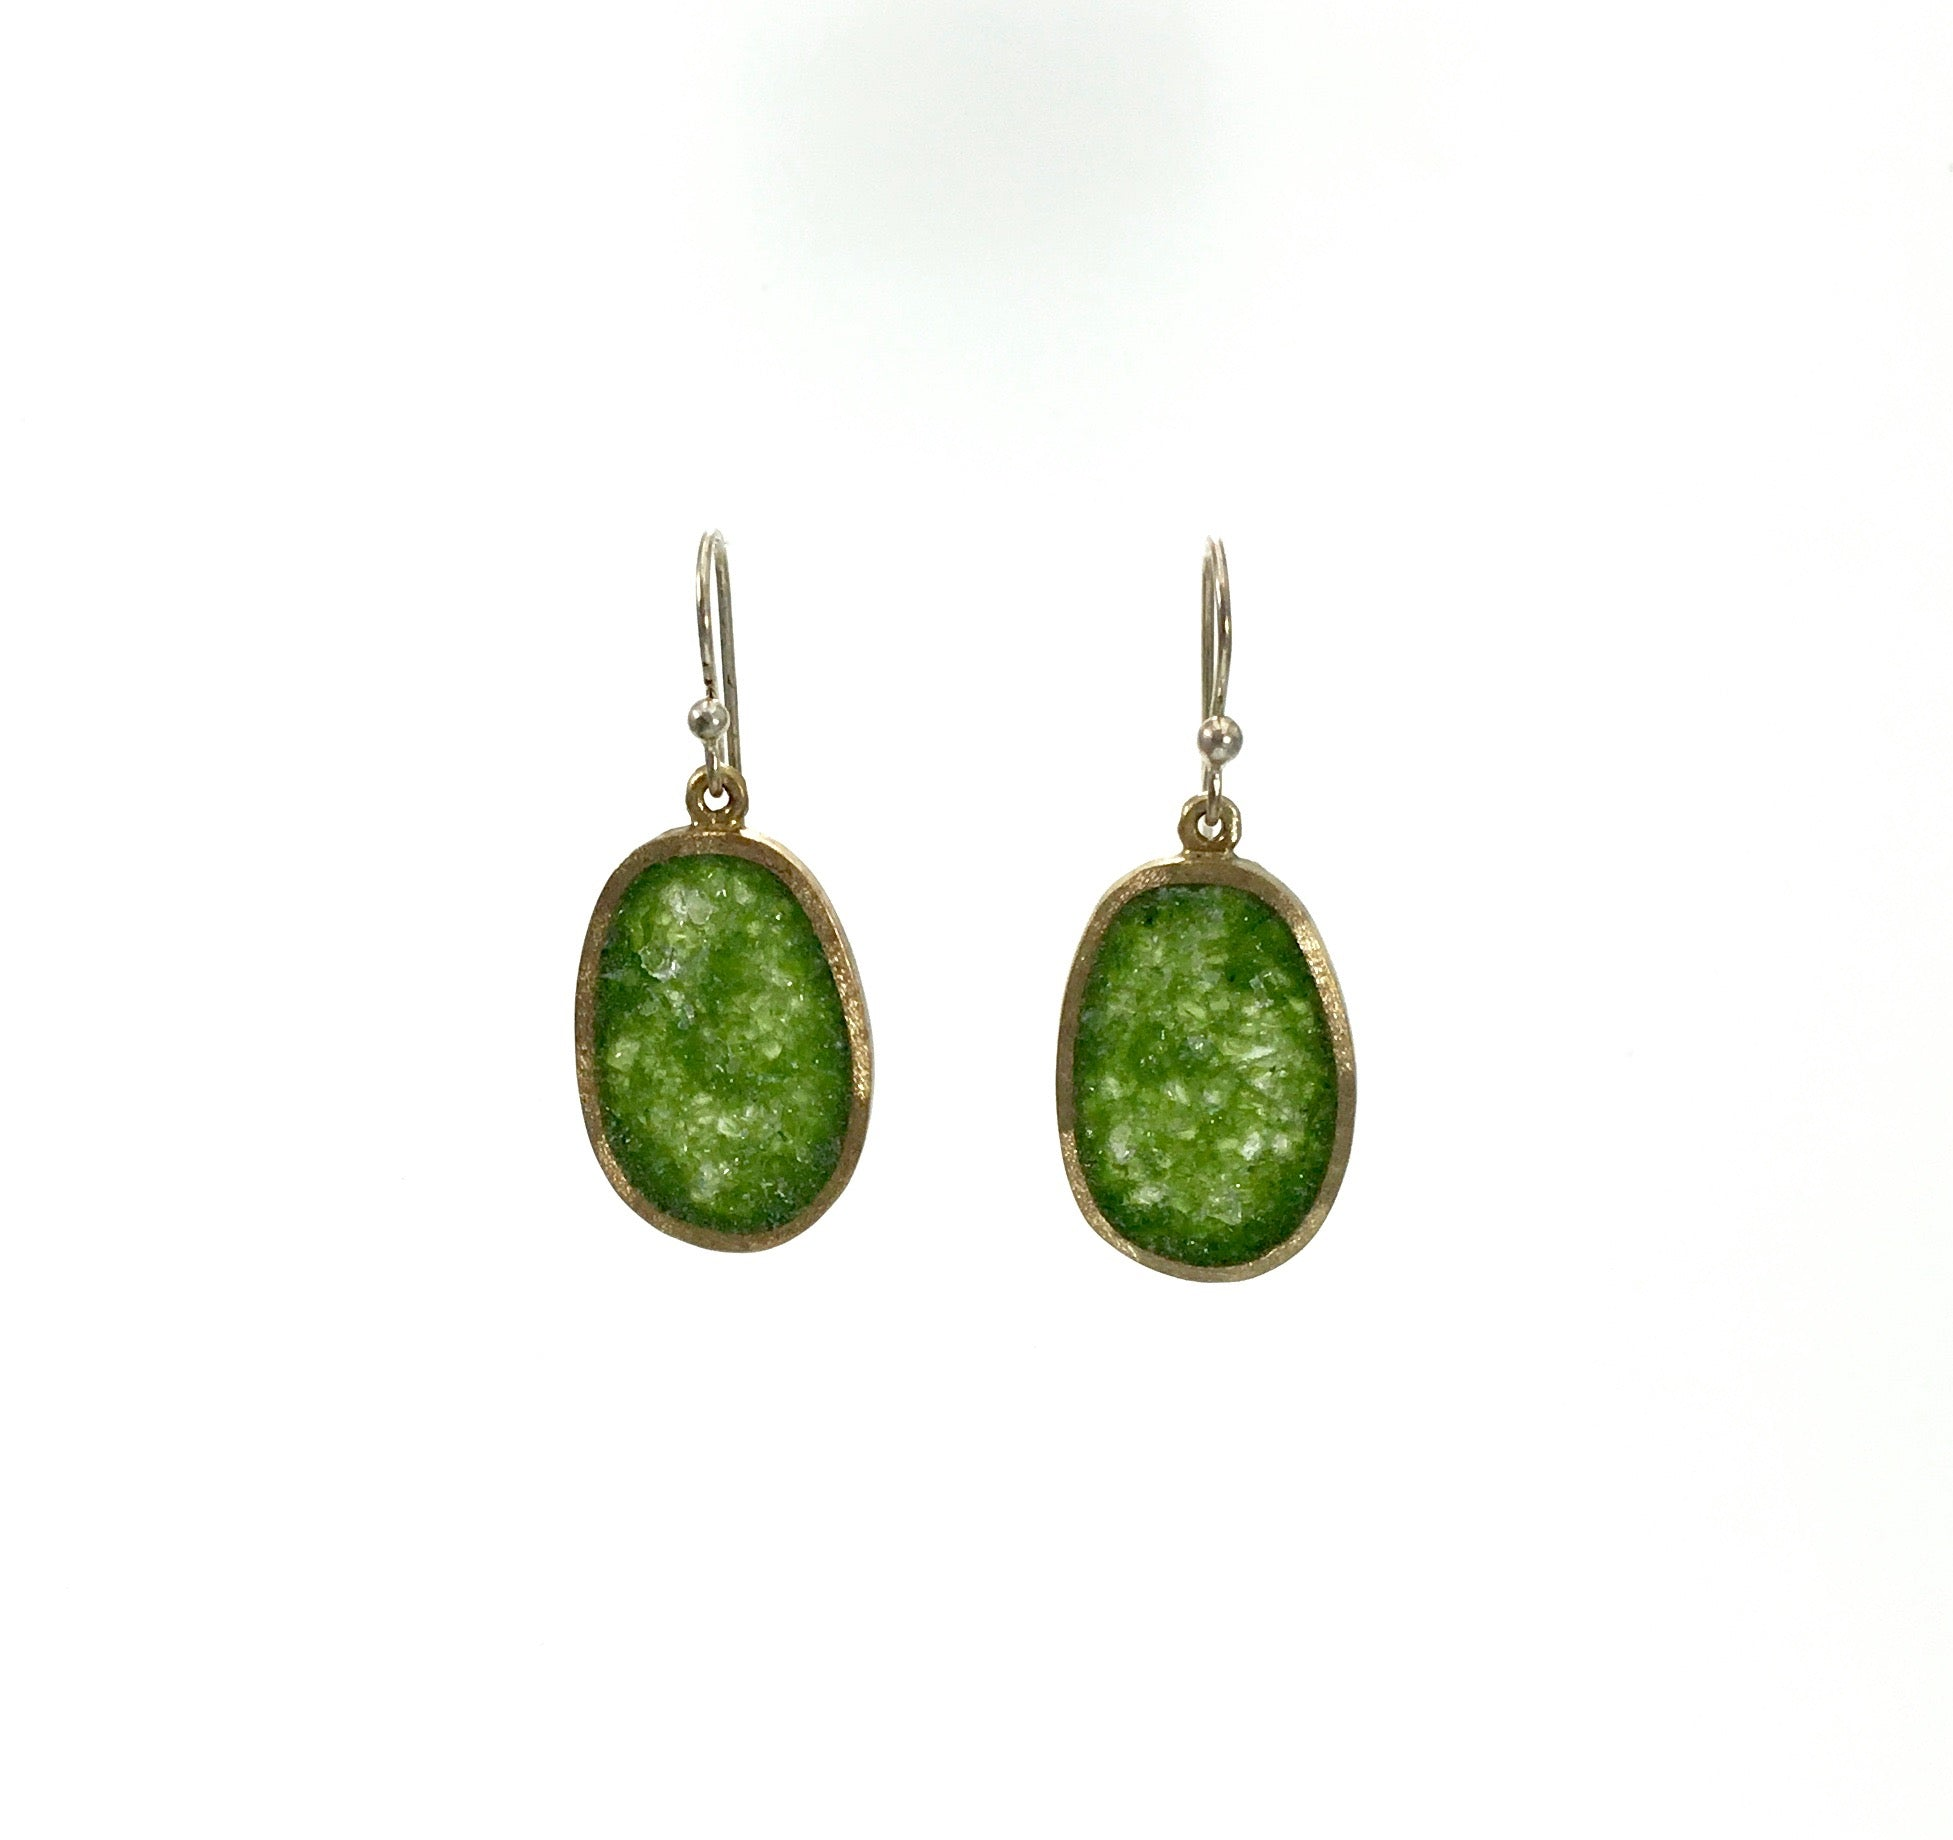 David Urso's Small Bronze Boulder Earrings in Green